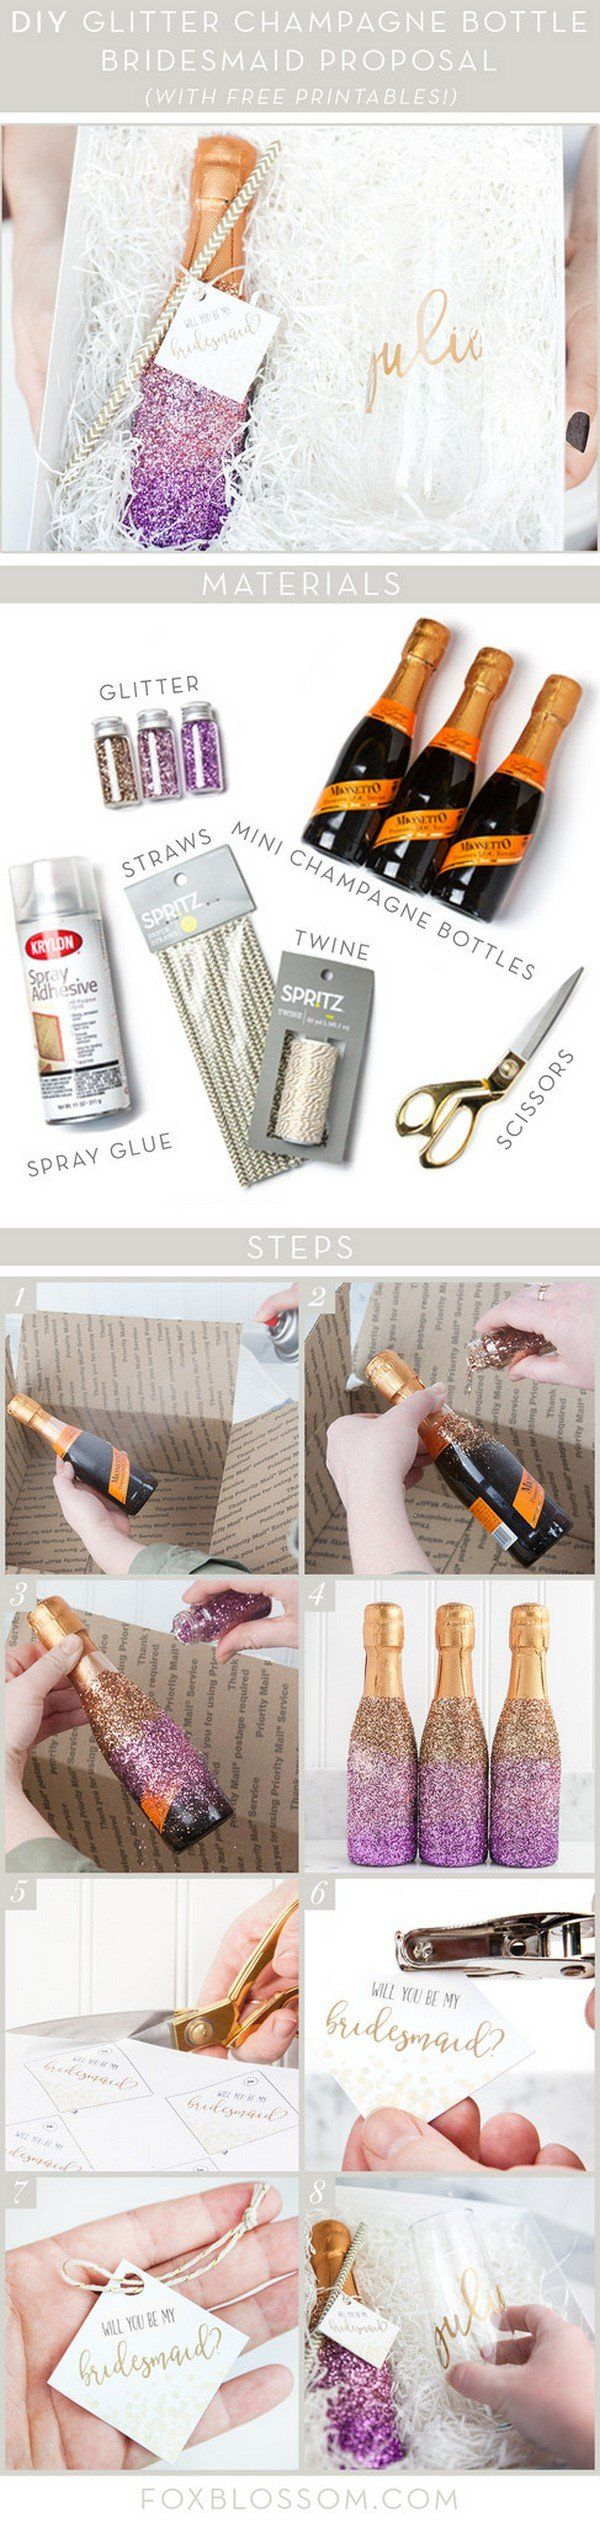 diy glitter champagne bottle bridesmaid proposal gift ideas+ You can add chocolate candy